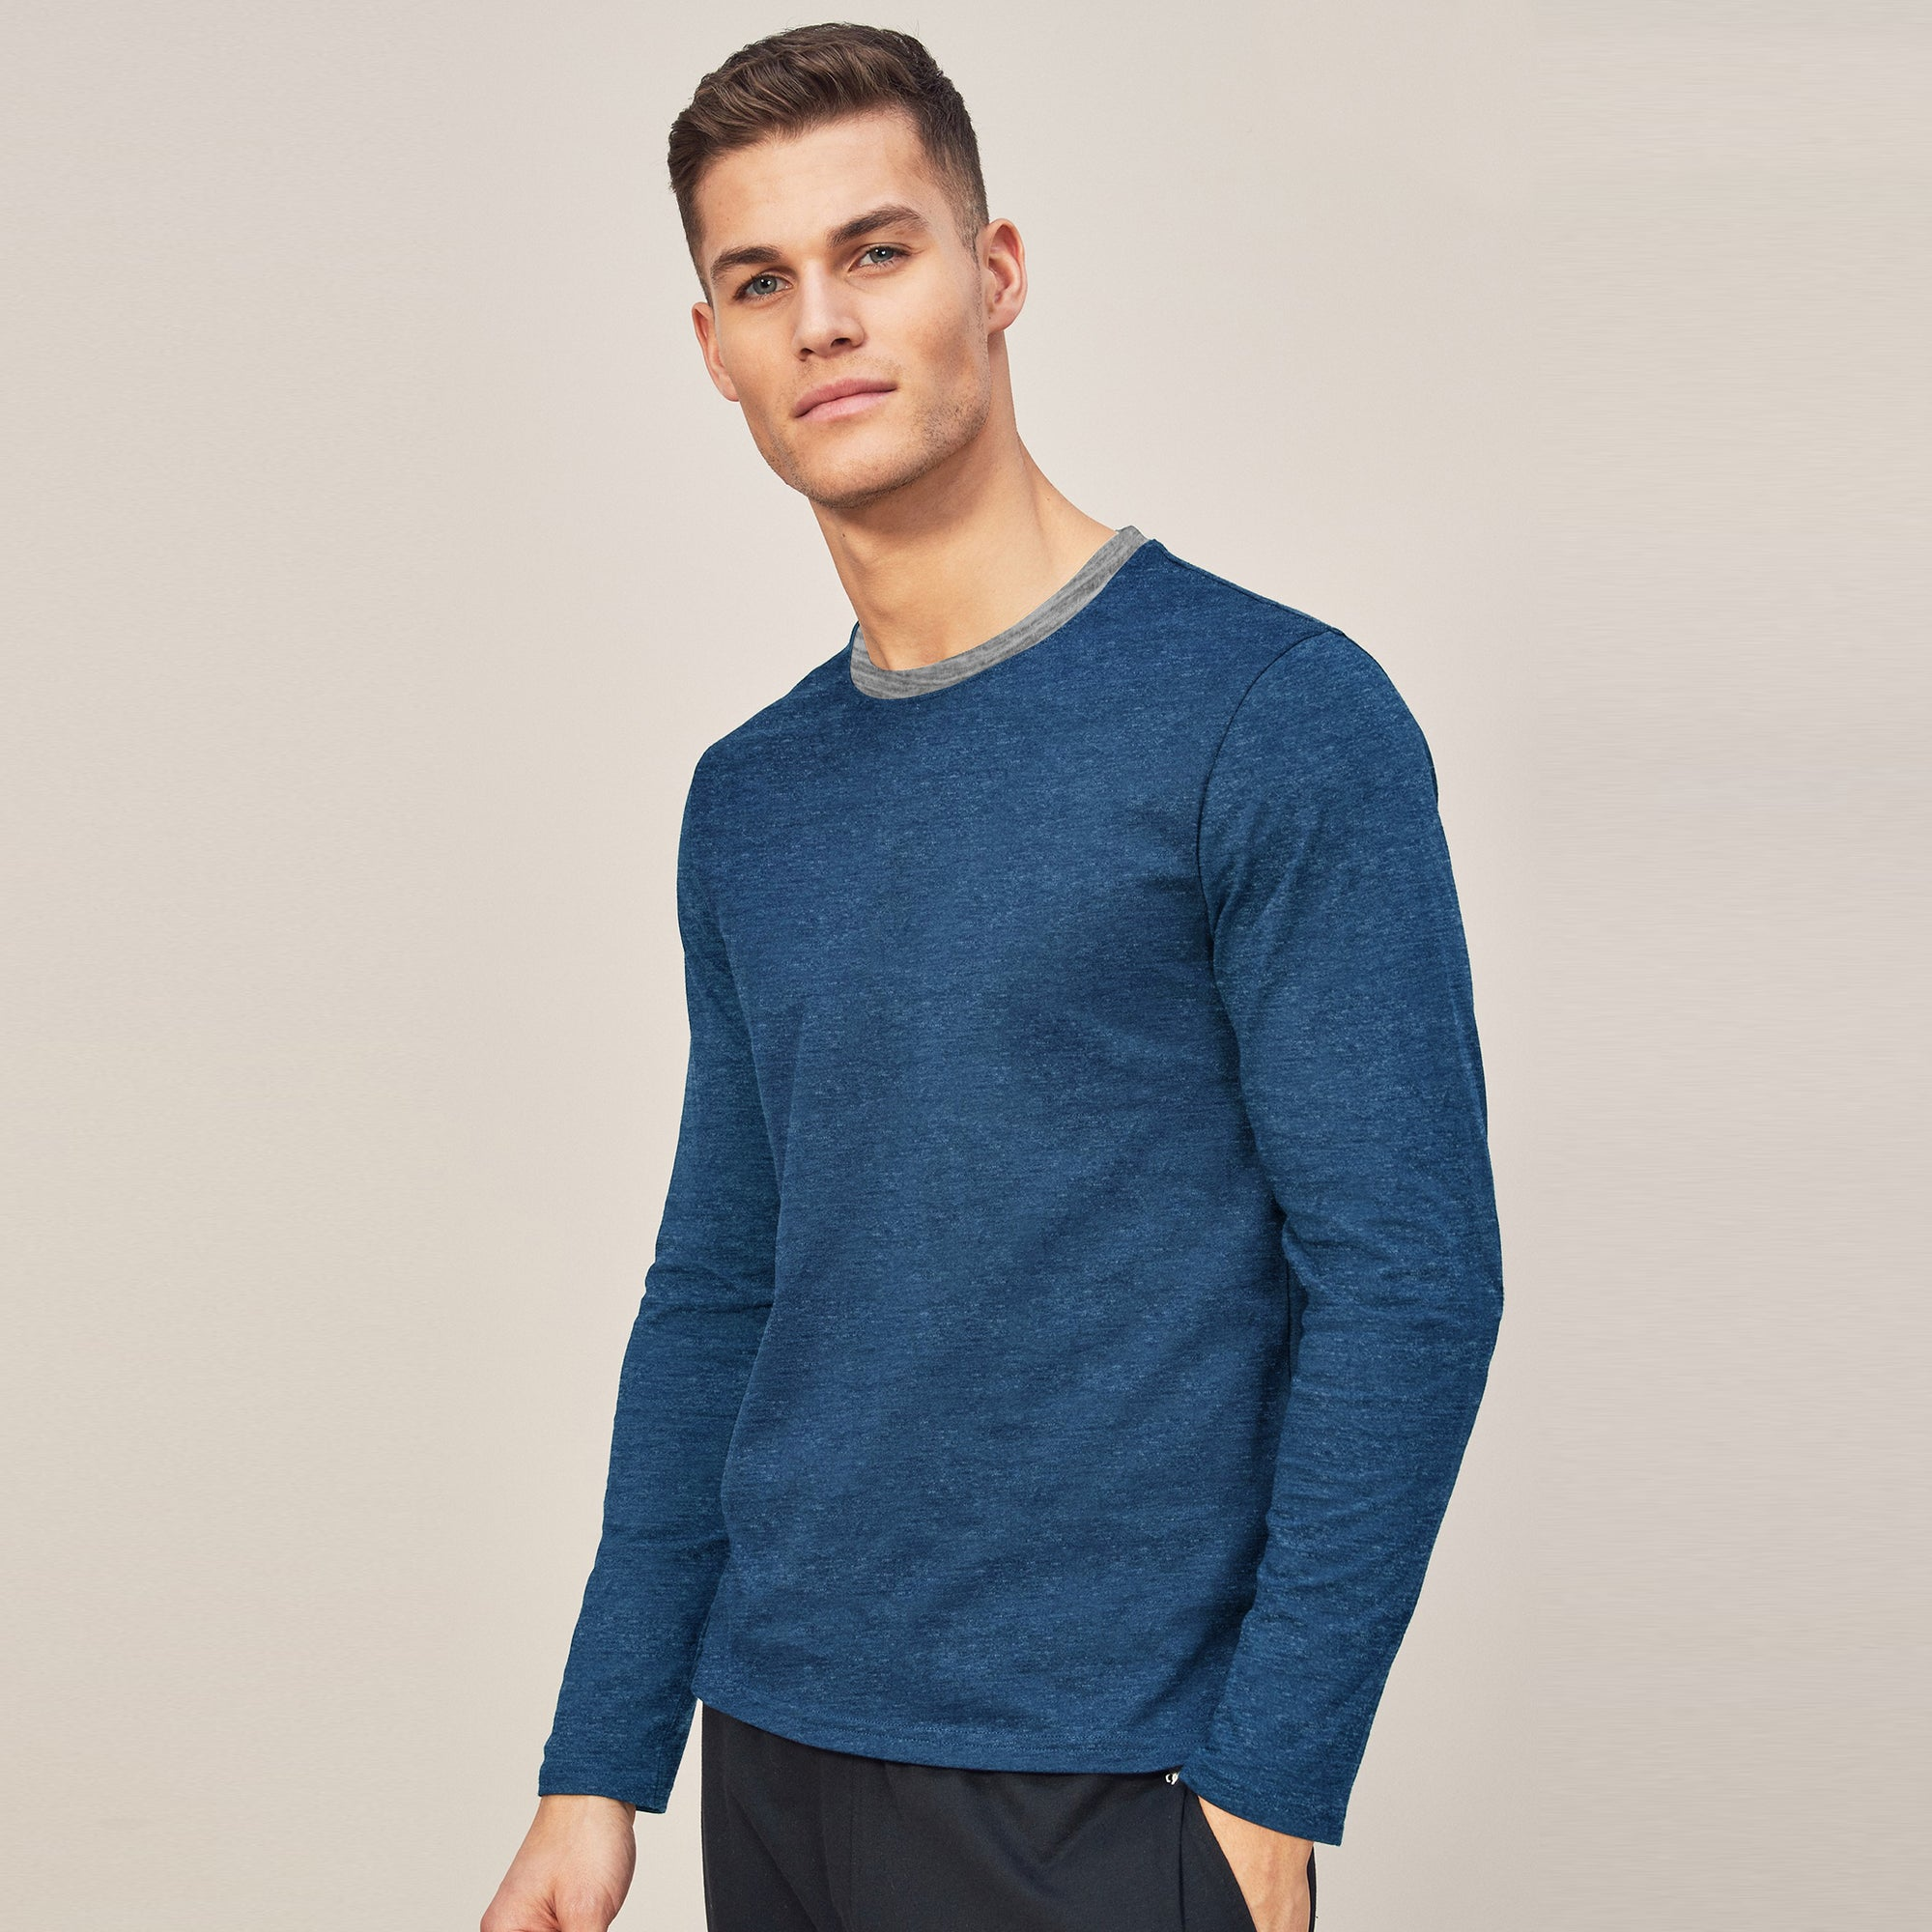 Beverly Hills Single Jersey Long Sleeve Tee Shirt For Men-Dark Sky Melange-BE8896